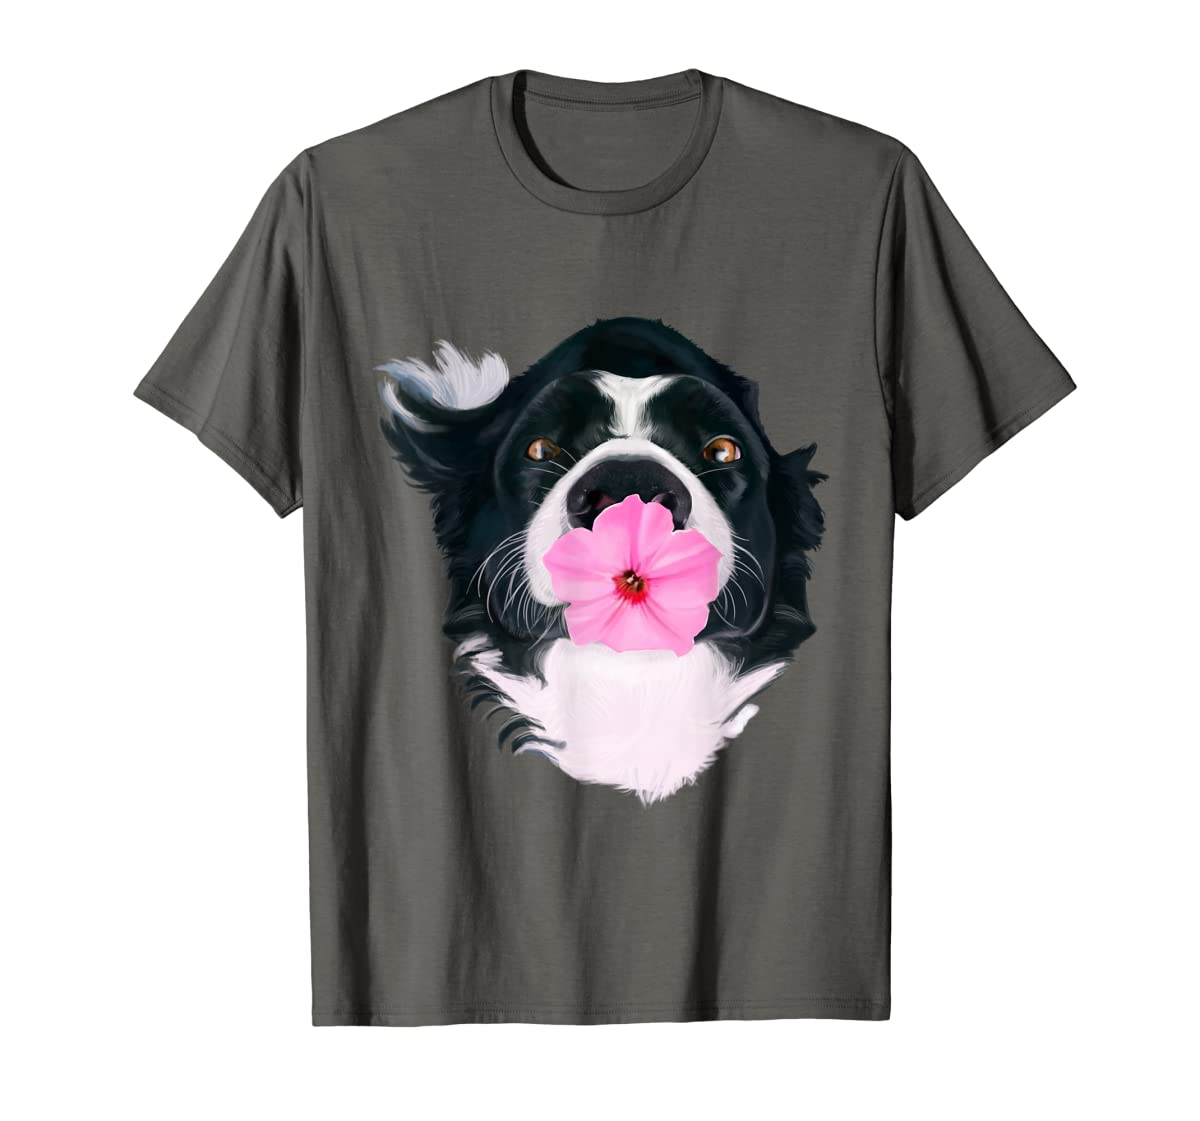 Border Collie Sweet Dog T-Shirt Dogs Tee Shirt Gifts-Men's T-Shirt-Dark Heather